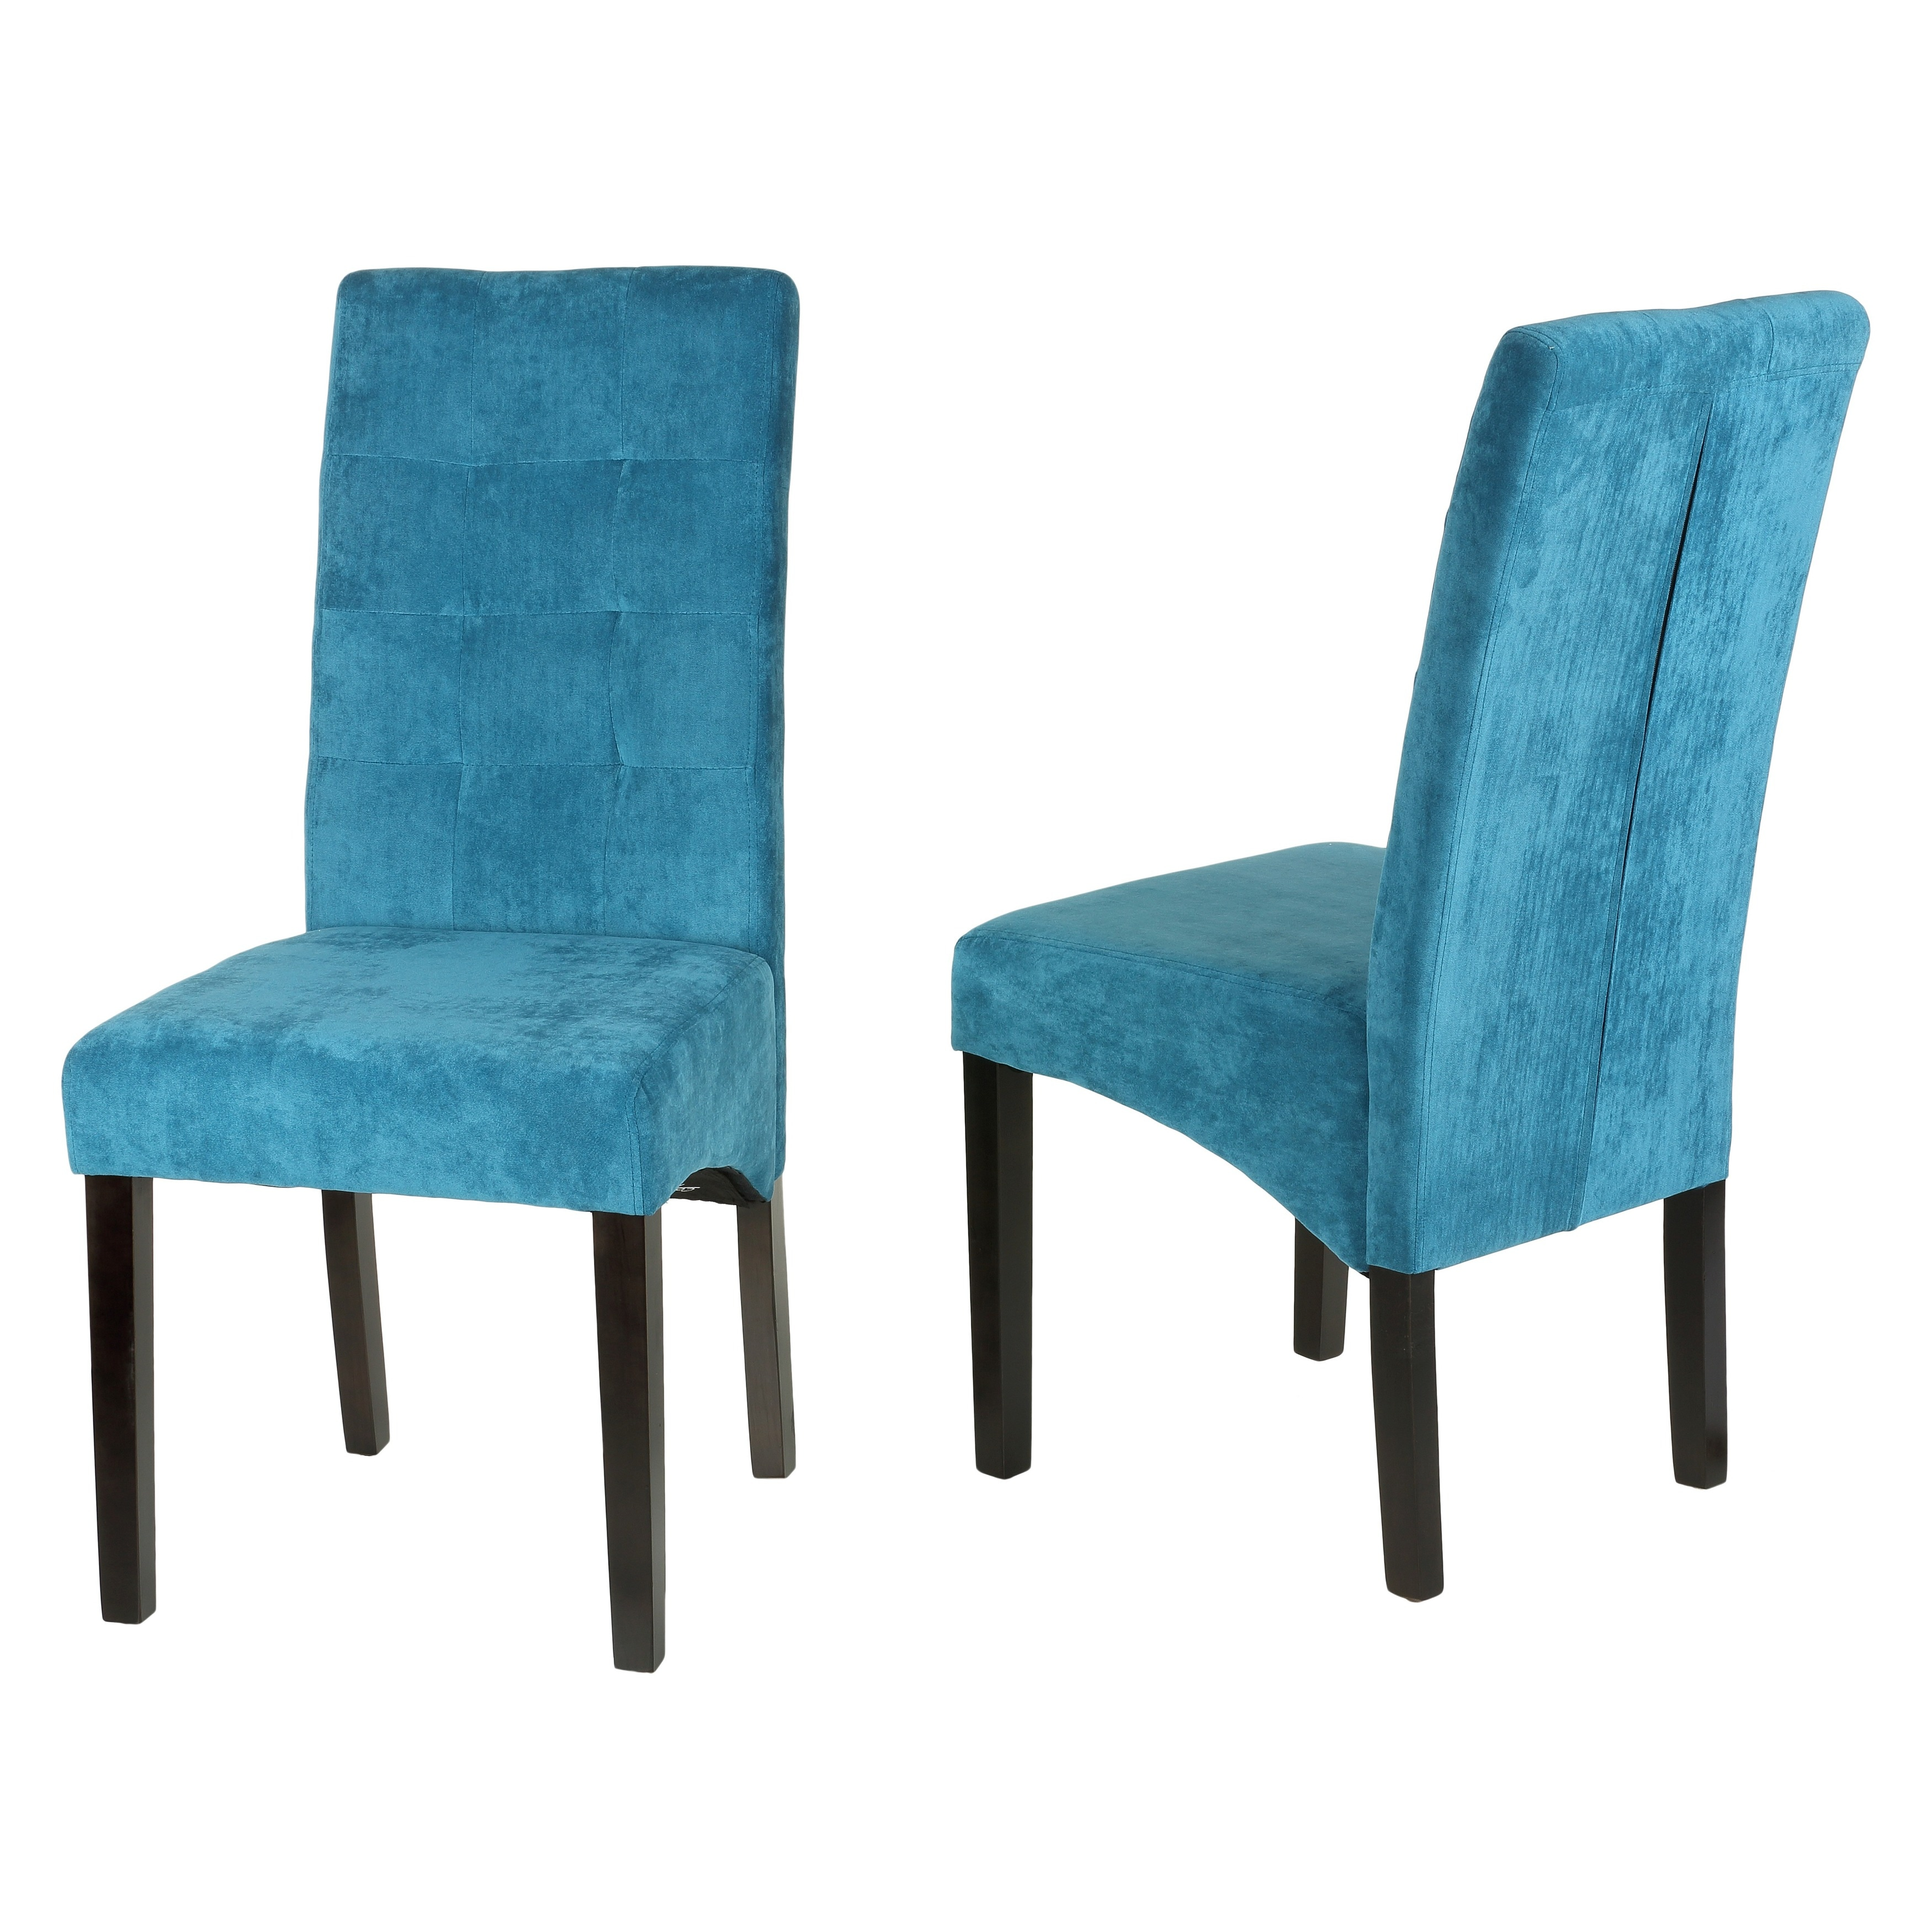 Microfiber Dining Chairs Cortesi Home 39monty 39 Blue Microfiber Dining Chairs Set Of